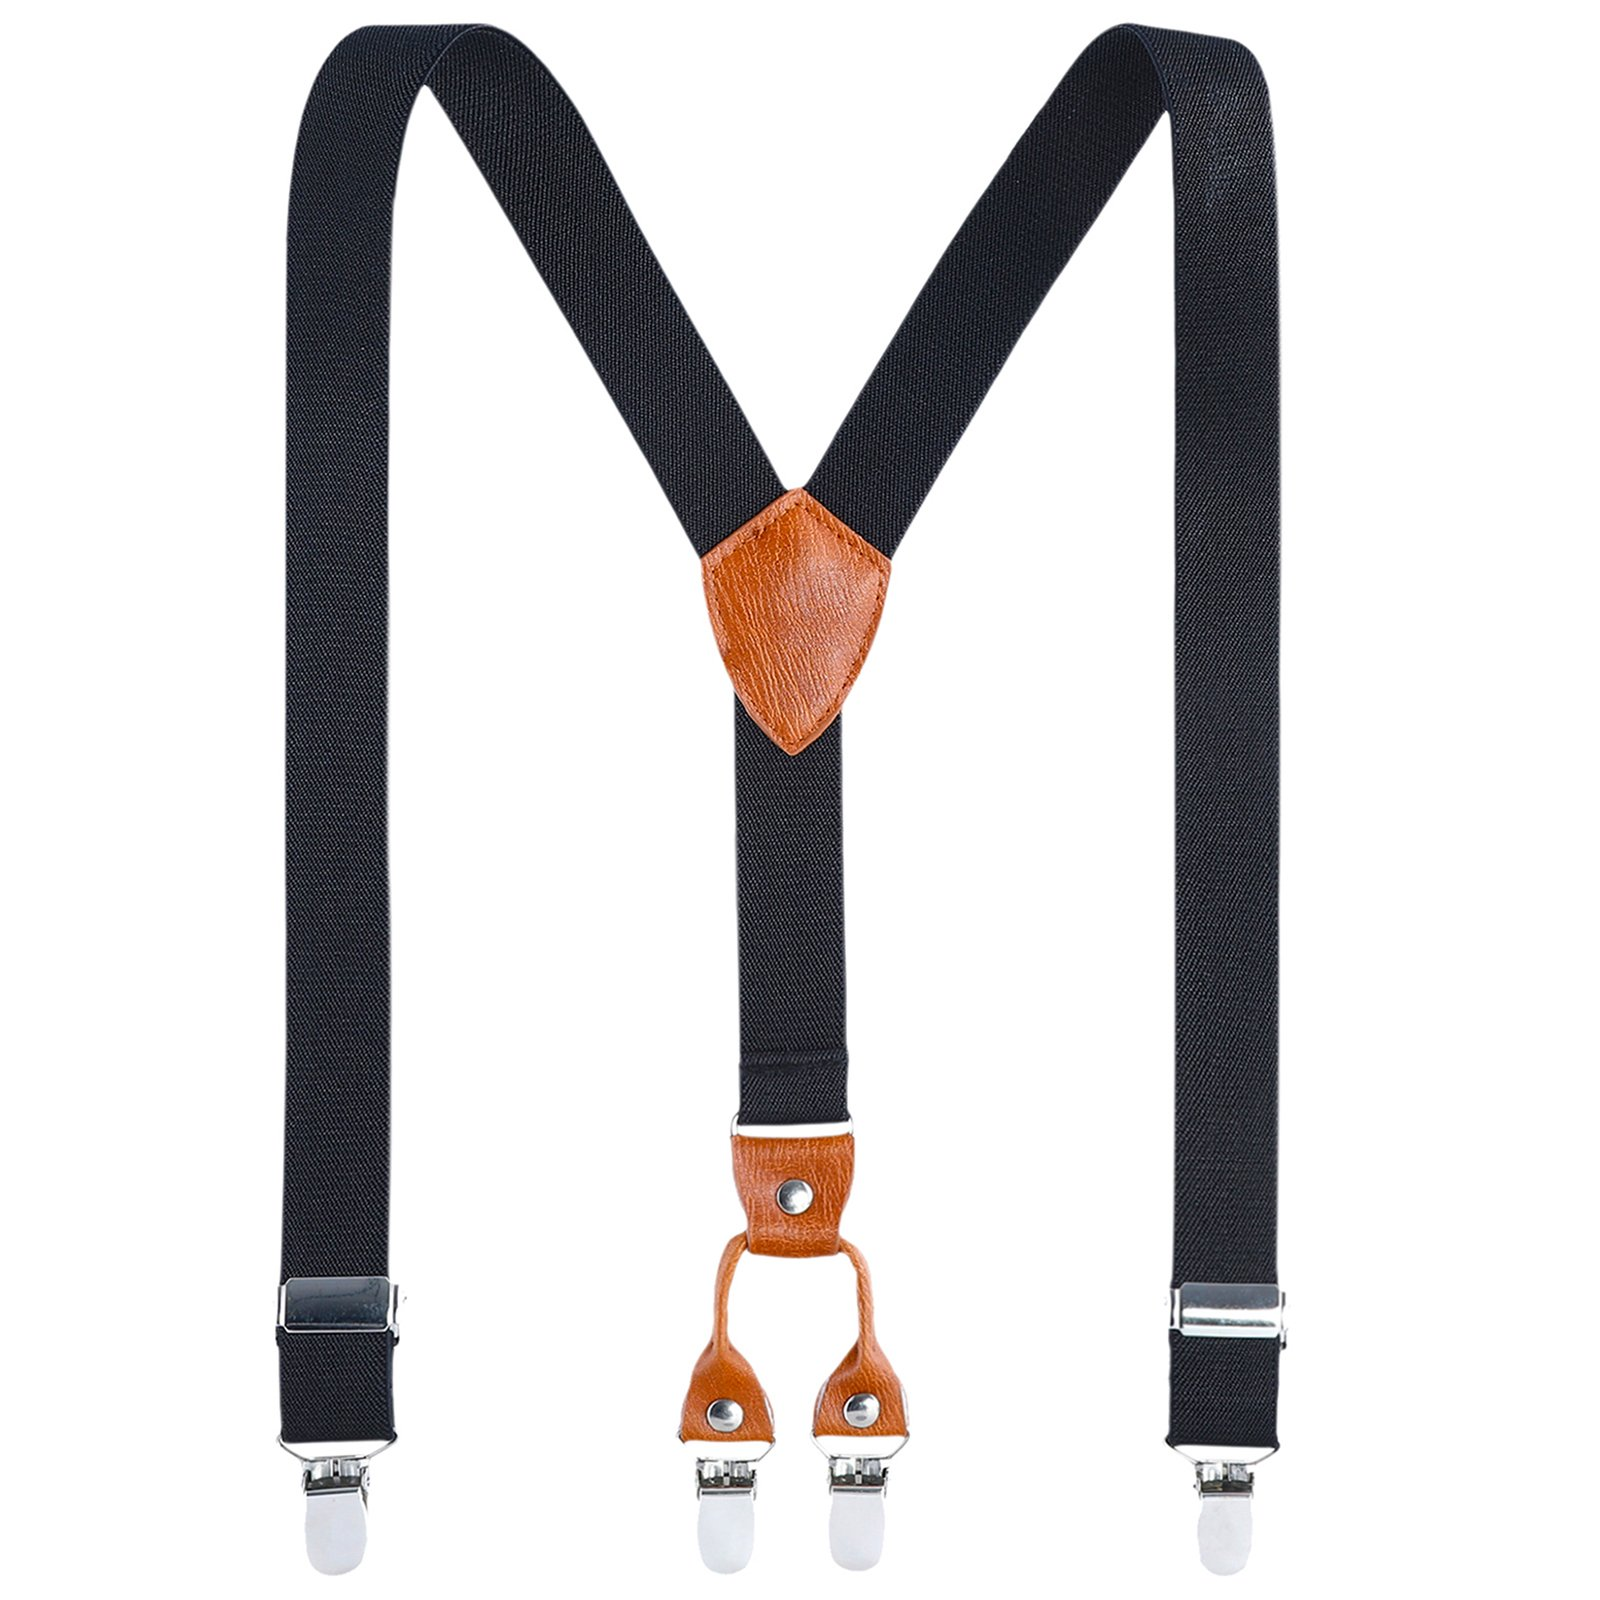 Kids Child Men Boy Suspenders - Adjustable Elastic Solid Color 4 Strong Clips Braces(31Inches (9 Years to 5 Feet Tall), Black)